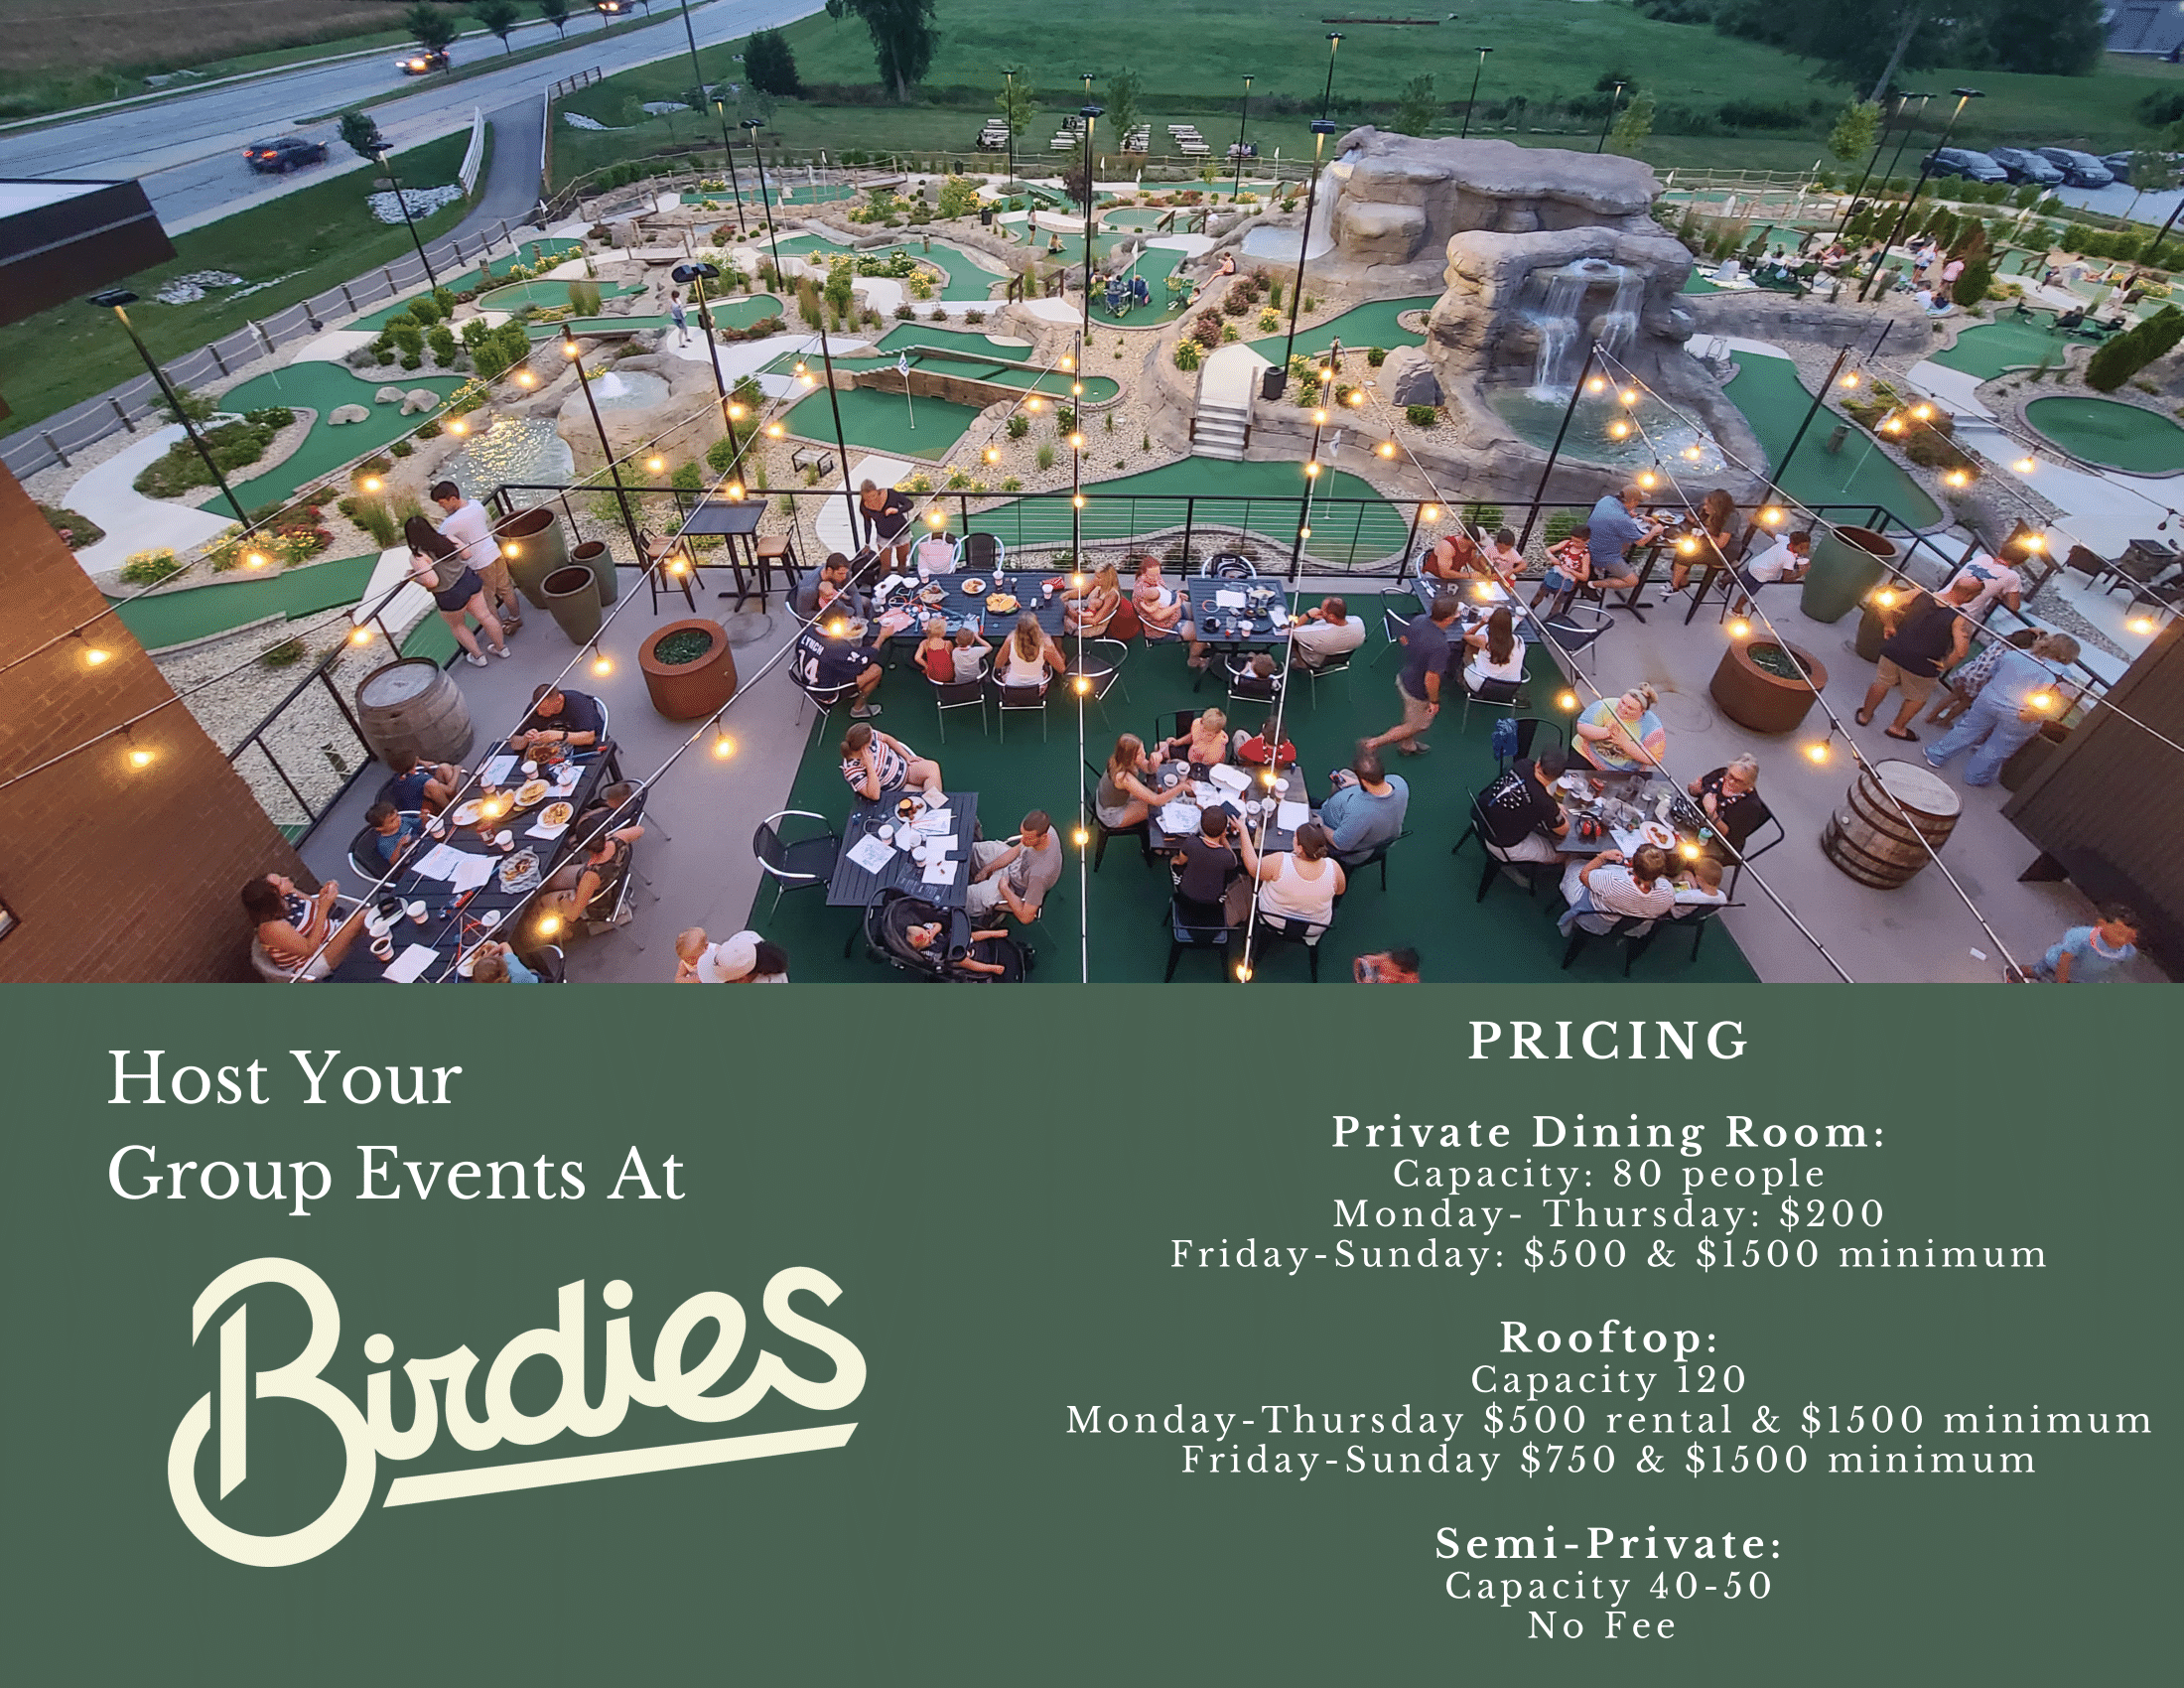 """Flyer showing aerial view of people dining at Birdies and the mini golf course. Below the image is the text: """"Host your group events at Birdies. Pricing: Private dining room, capacity 80 people, monday - thursday for $200 and Friday - Sunday $500 with a $1500 minimum. Rooftop with capacity of 120, Monday -Thursday $500 rental and $1500 minimum, Friday - Sunday $750 and a $11500 minimum. SEmi-private has capacity of 40-50 and no fee"""